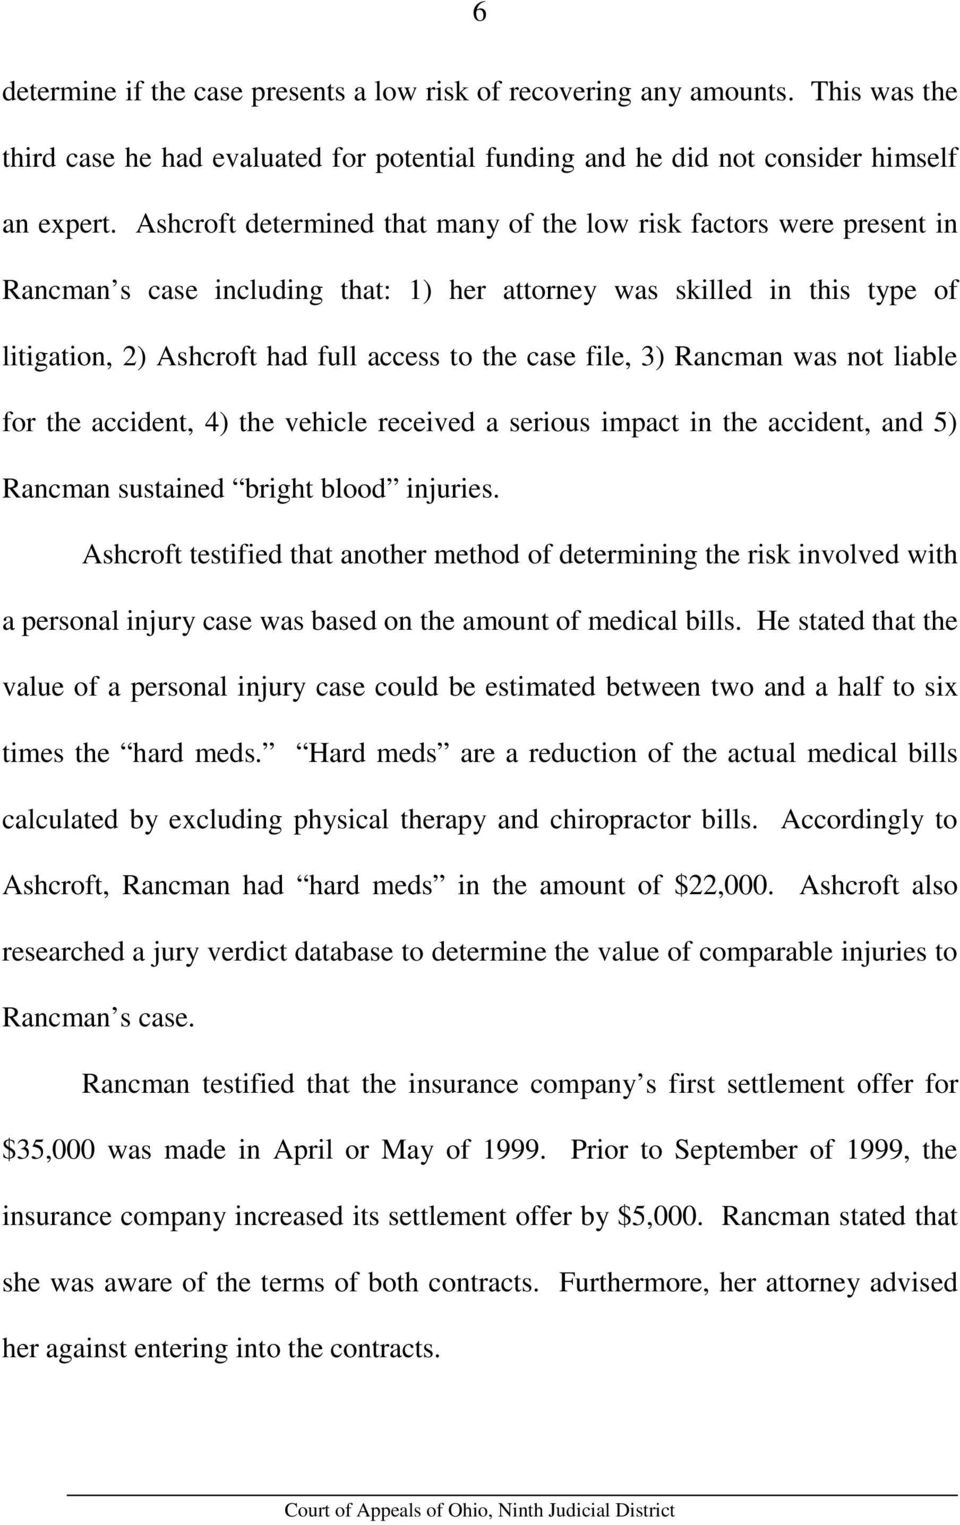 file, 3) Rancman was not liable for the accident, 4) the vehicle received a serious impact in the accident, and 5) Rancman sustained bright blood injuries.